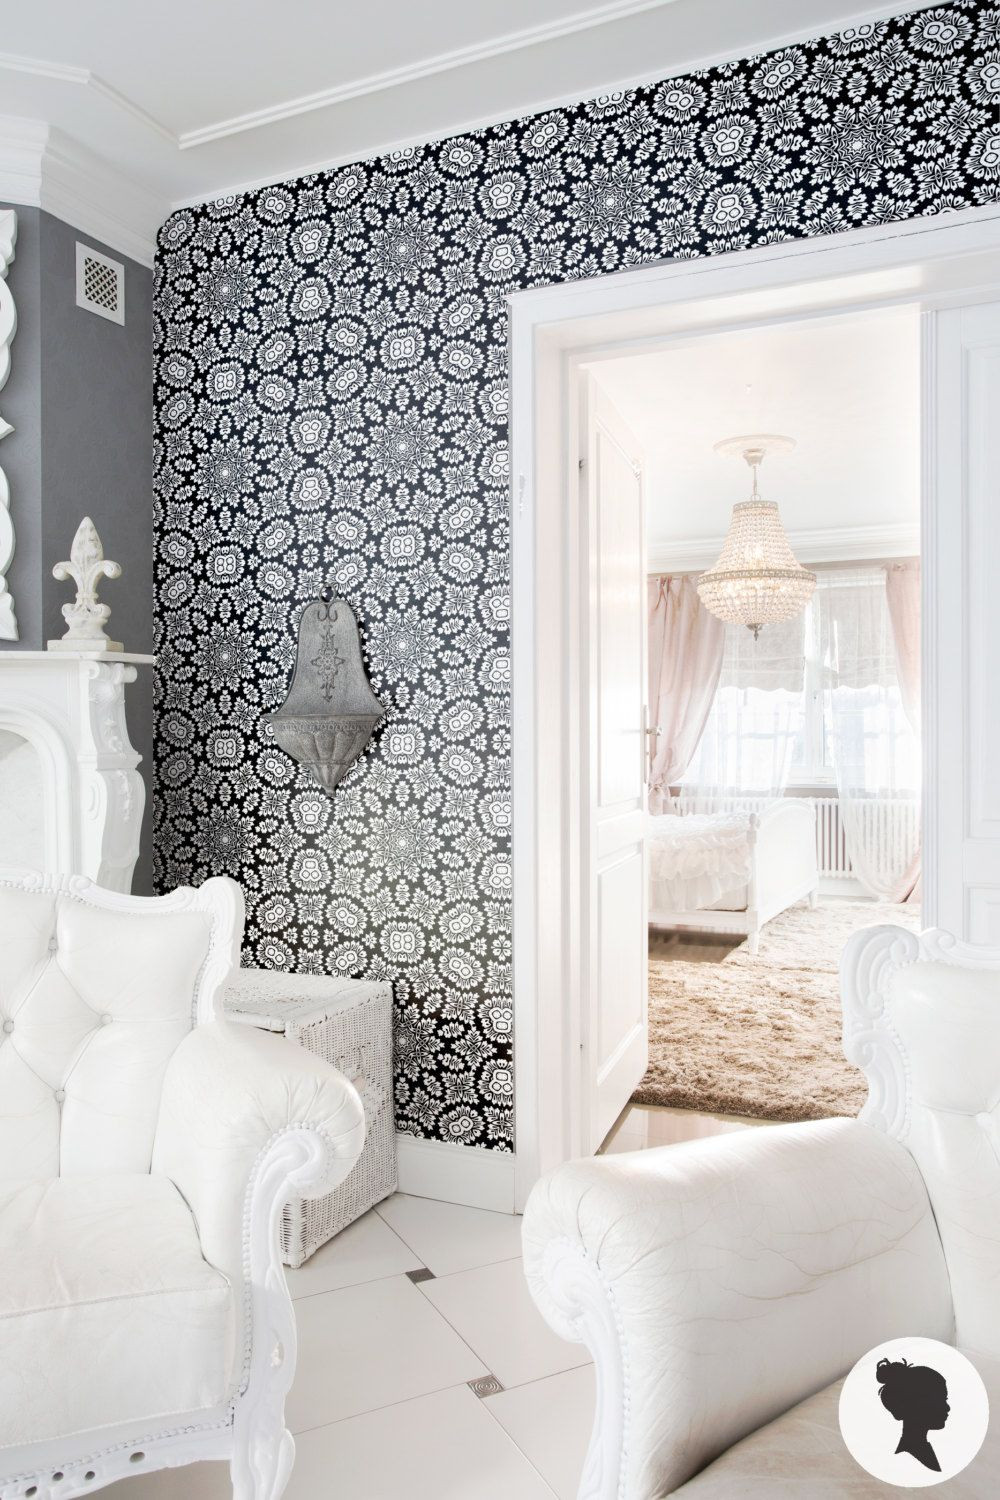 Retro Black Lace Wallpaper, Temporary Removable